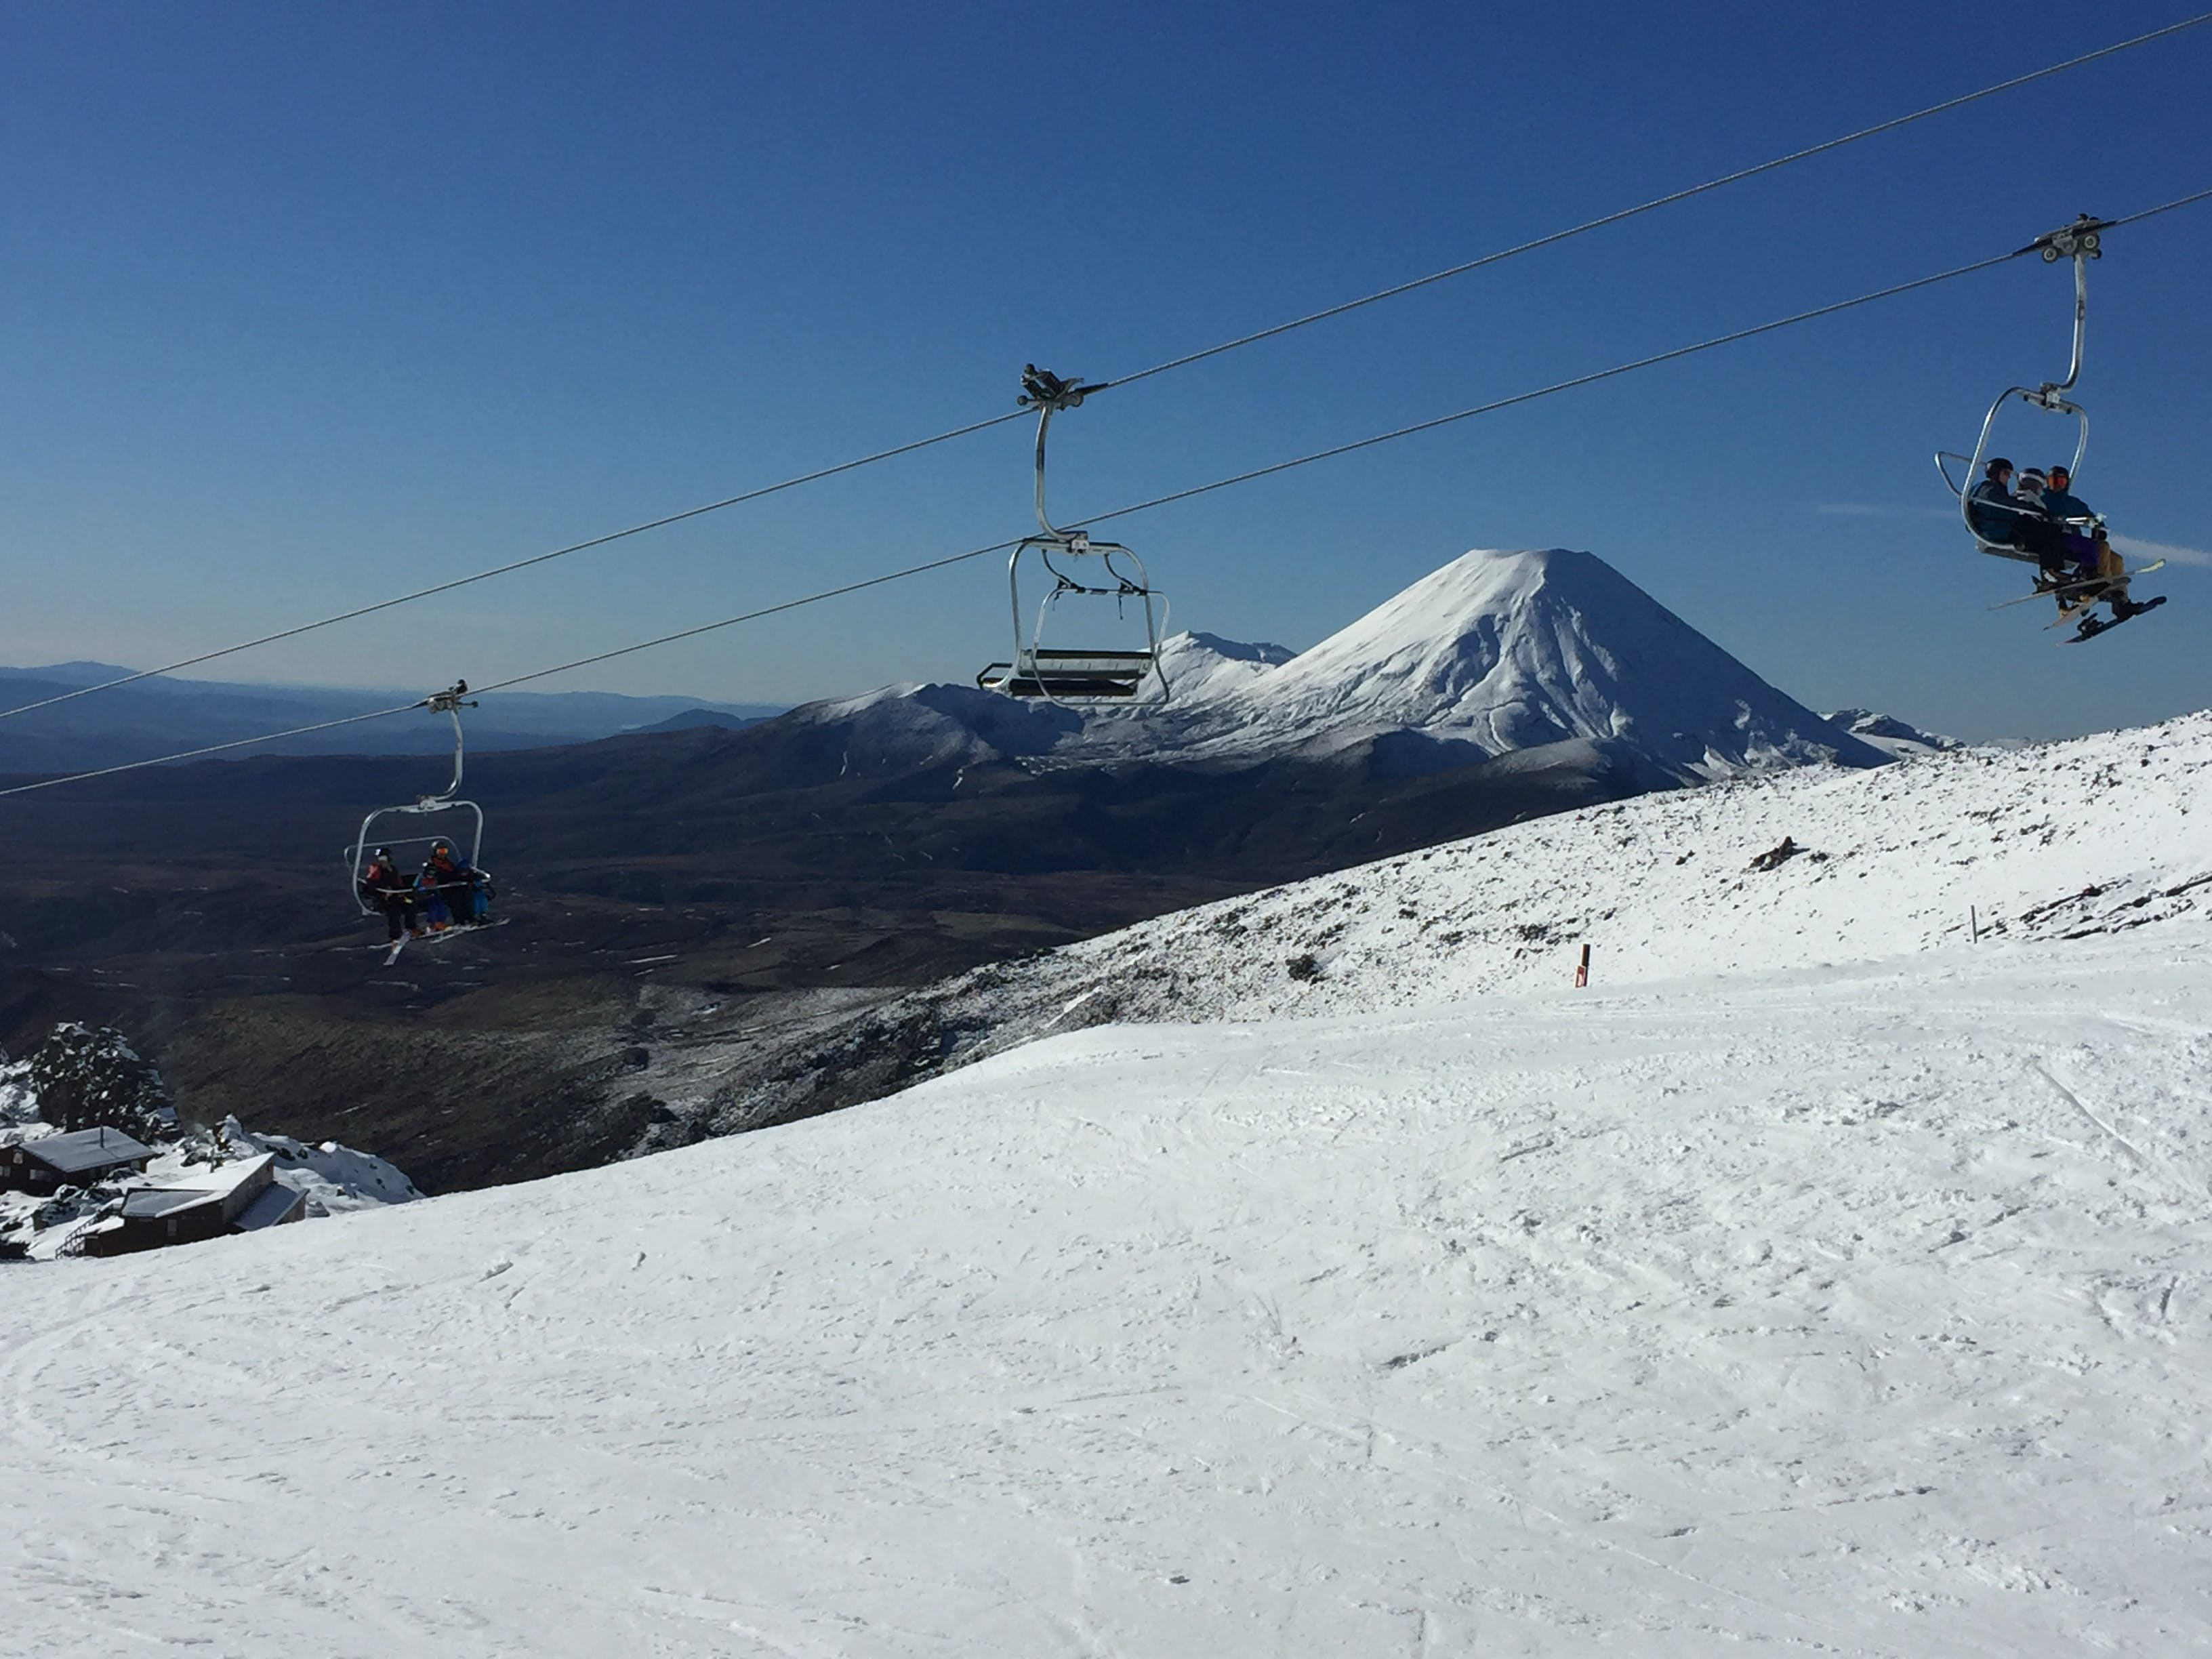 View of Mt Ngauruhoe and Mt Tongariro from Mt Ruapehu ski field Whakapapa